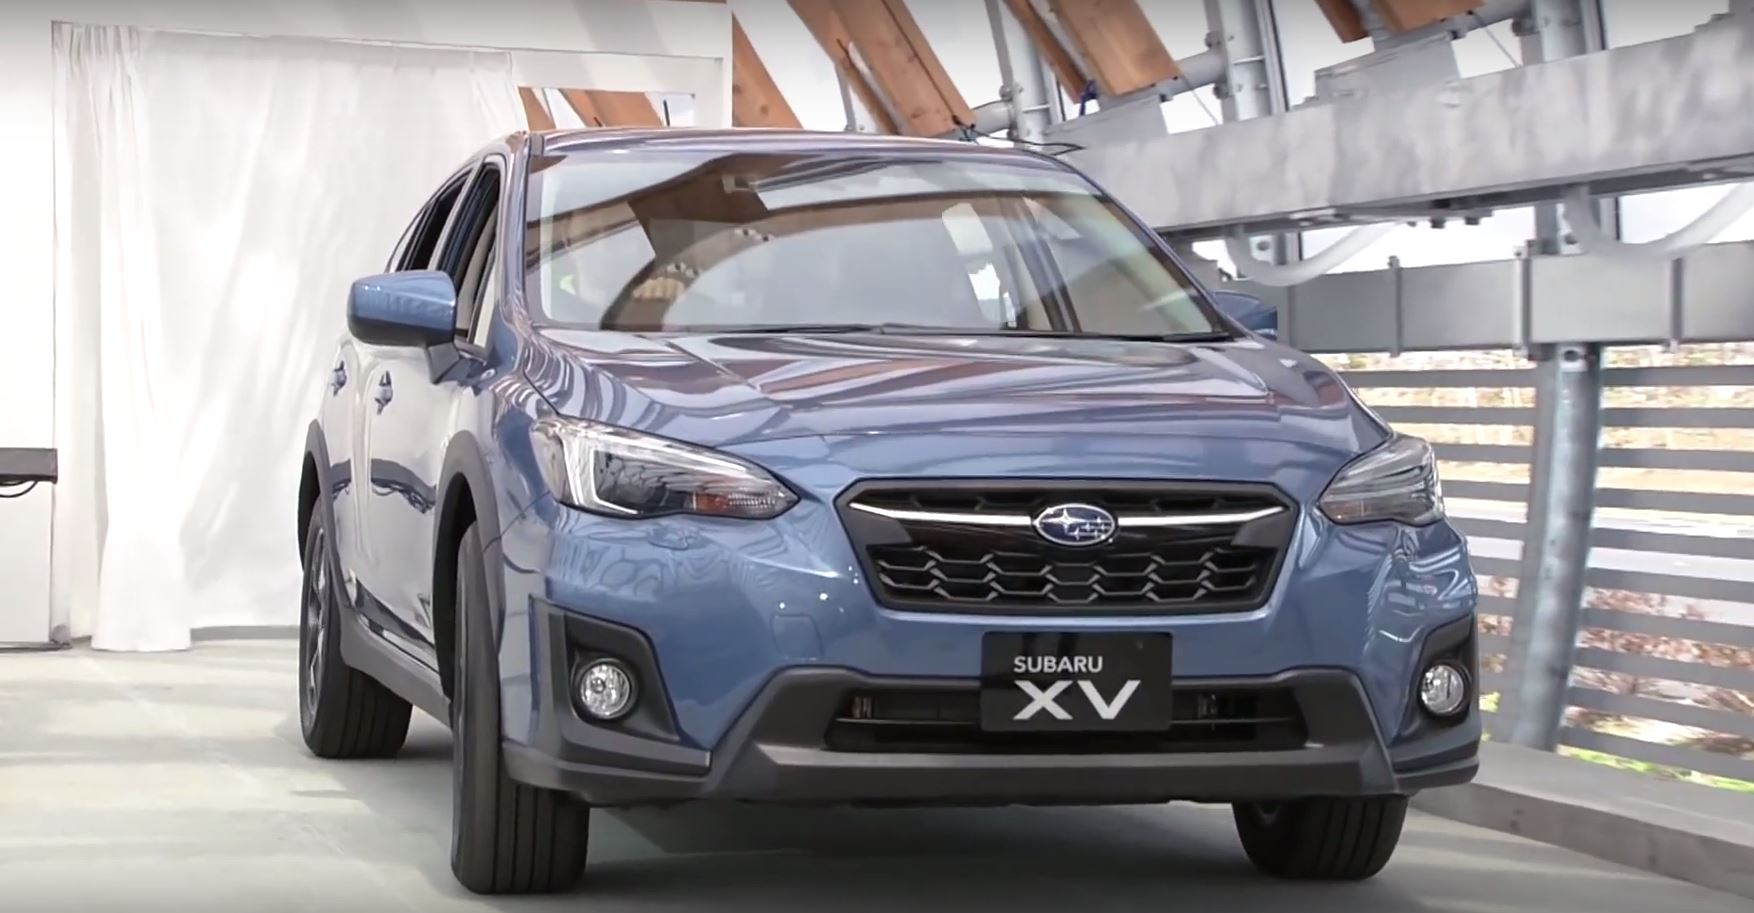 2018 subaru xv launched in japan with 1 6 liter 115 hp engine autoevolution. Black Bedroom Furniture Sets. Home Design Ideas